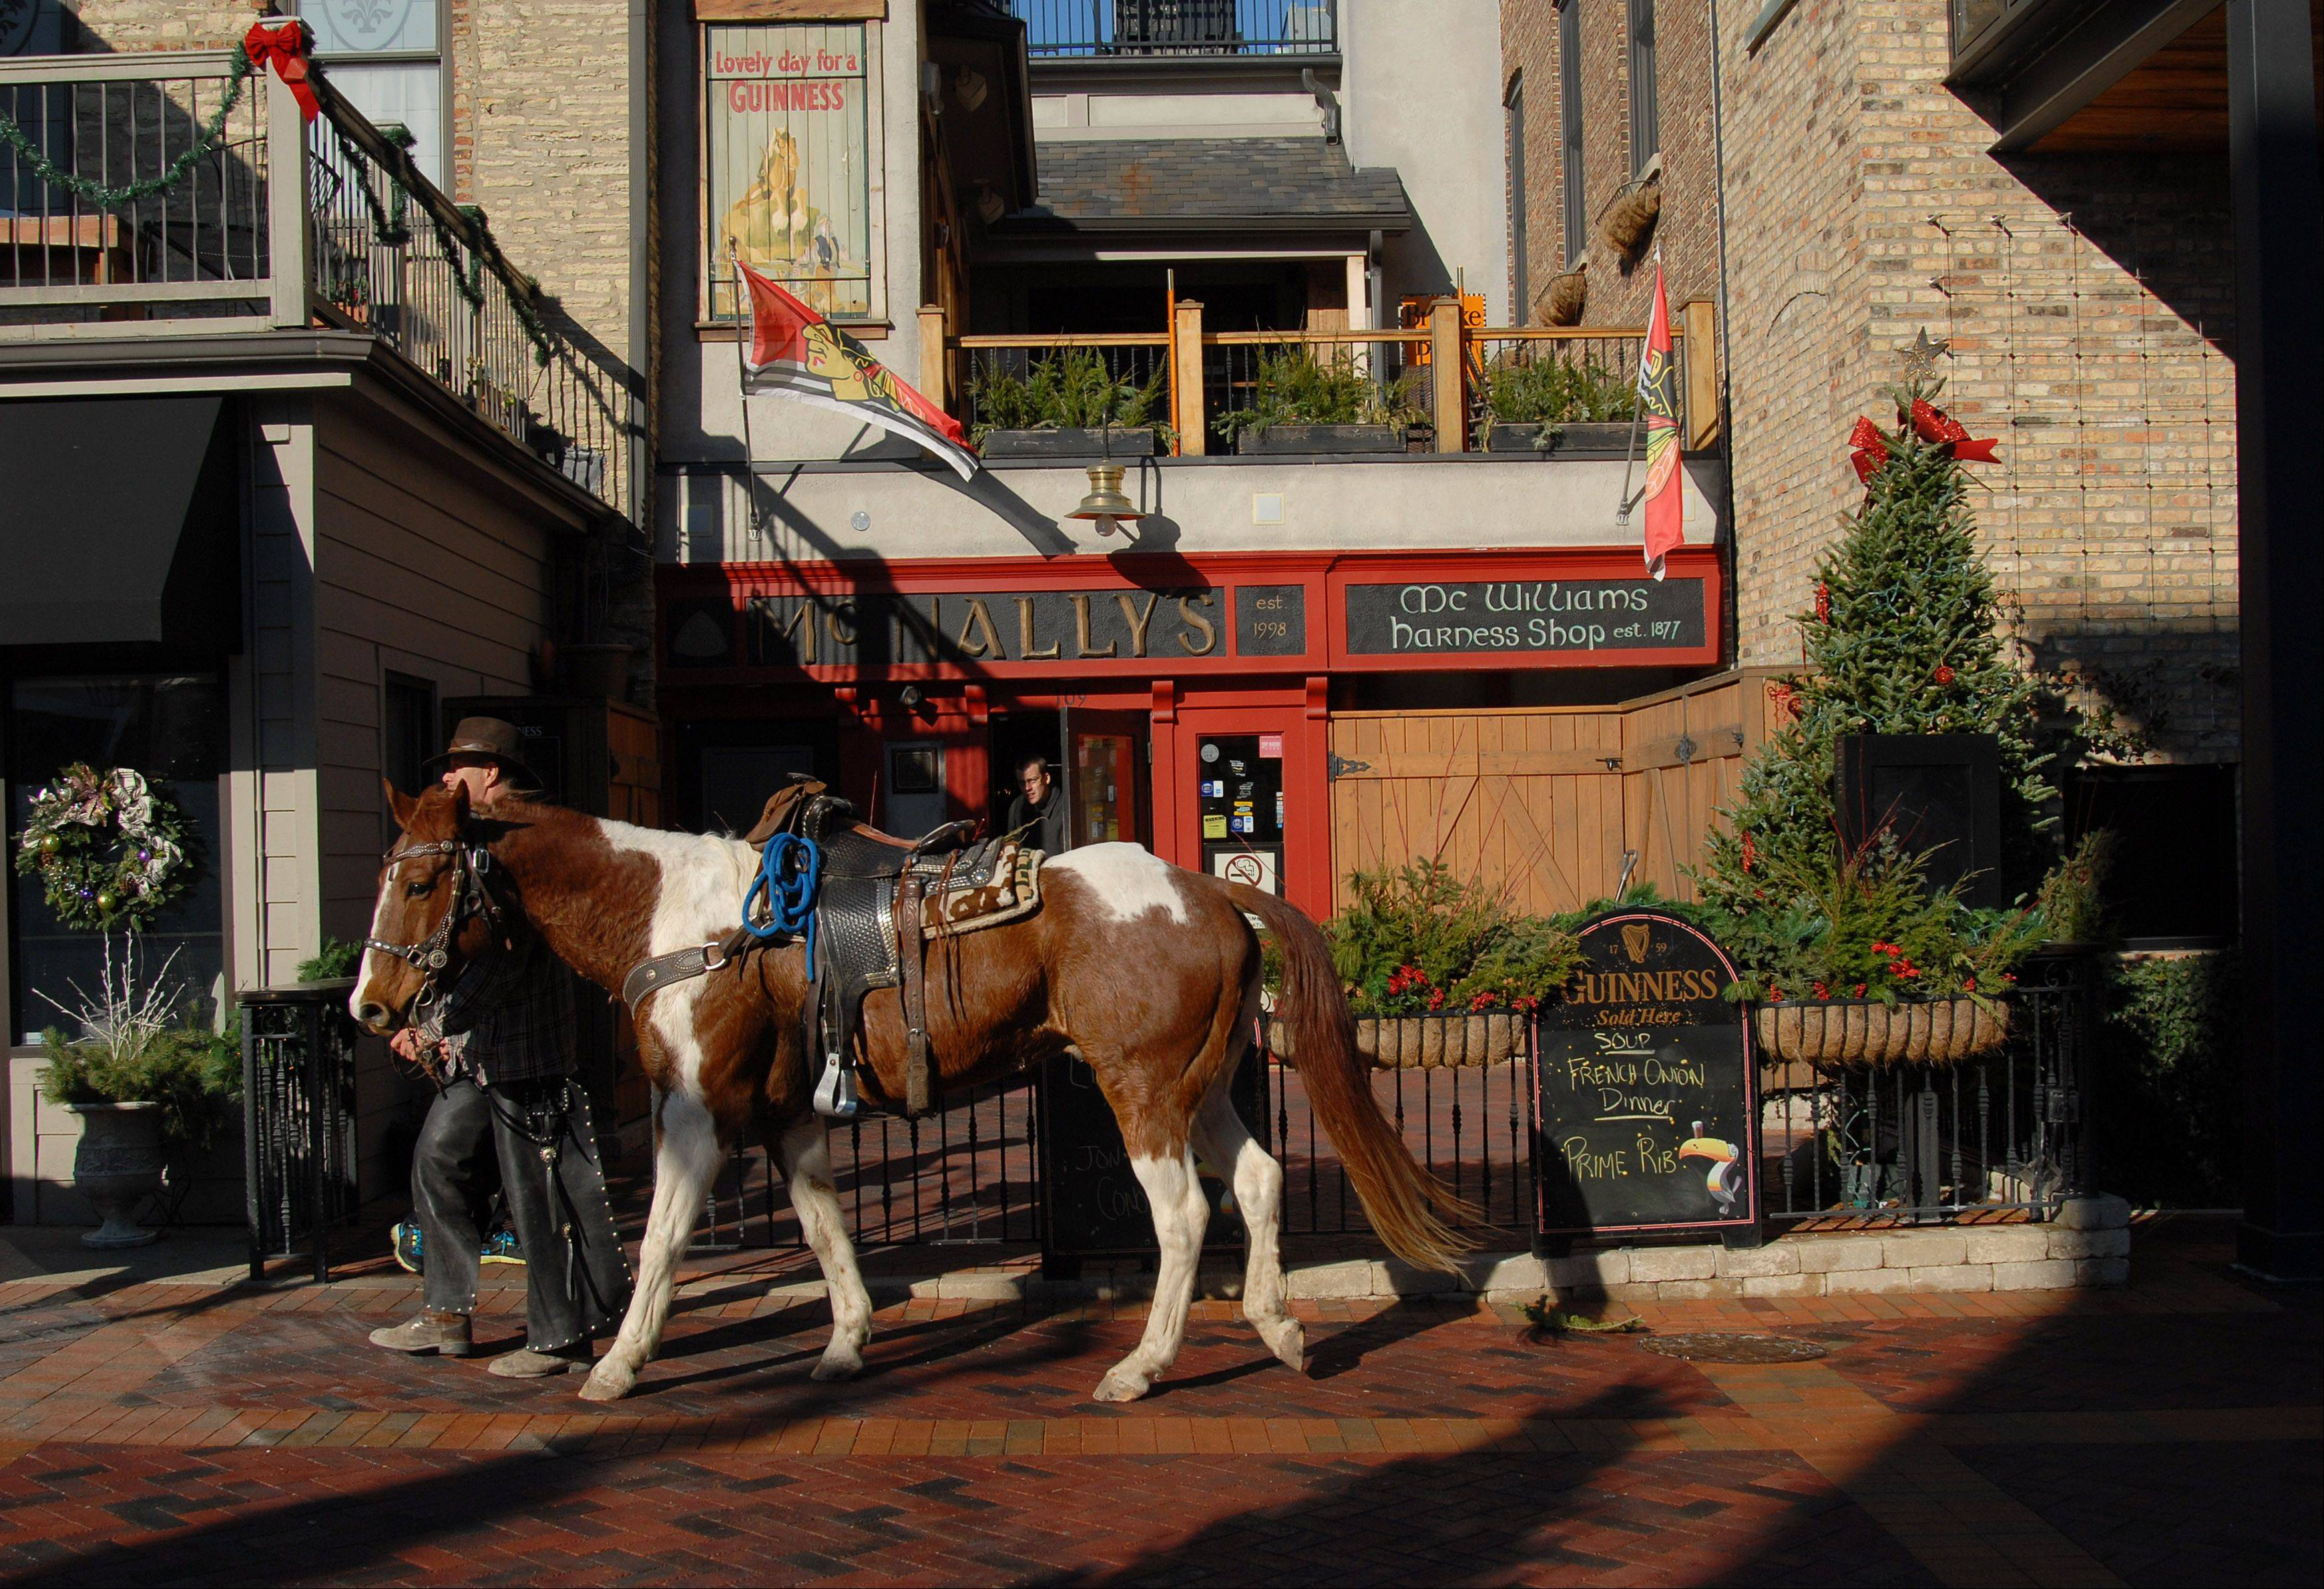 While I was waiting with a crowd of children for Santa Claus to make an appearance in St. Charles, I turned in time to see a couple cowboys walking their horses past a bar. It was a like a flashback to the Old West days. I was able to rattle off a few frames before the back-in-time scene disappeared. It wasn�t until I was editing the photos that I noticed the �McWilliams Harness Shop Est. 1877.� I did a little research and according to the book �St. Charles� by Wynette Edwards, the shop did exist in town and was owned by David McWilliams. This photo was published in the weekly Perspective column in the print edition.